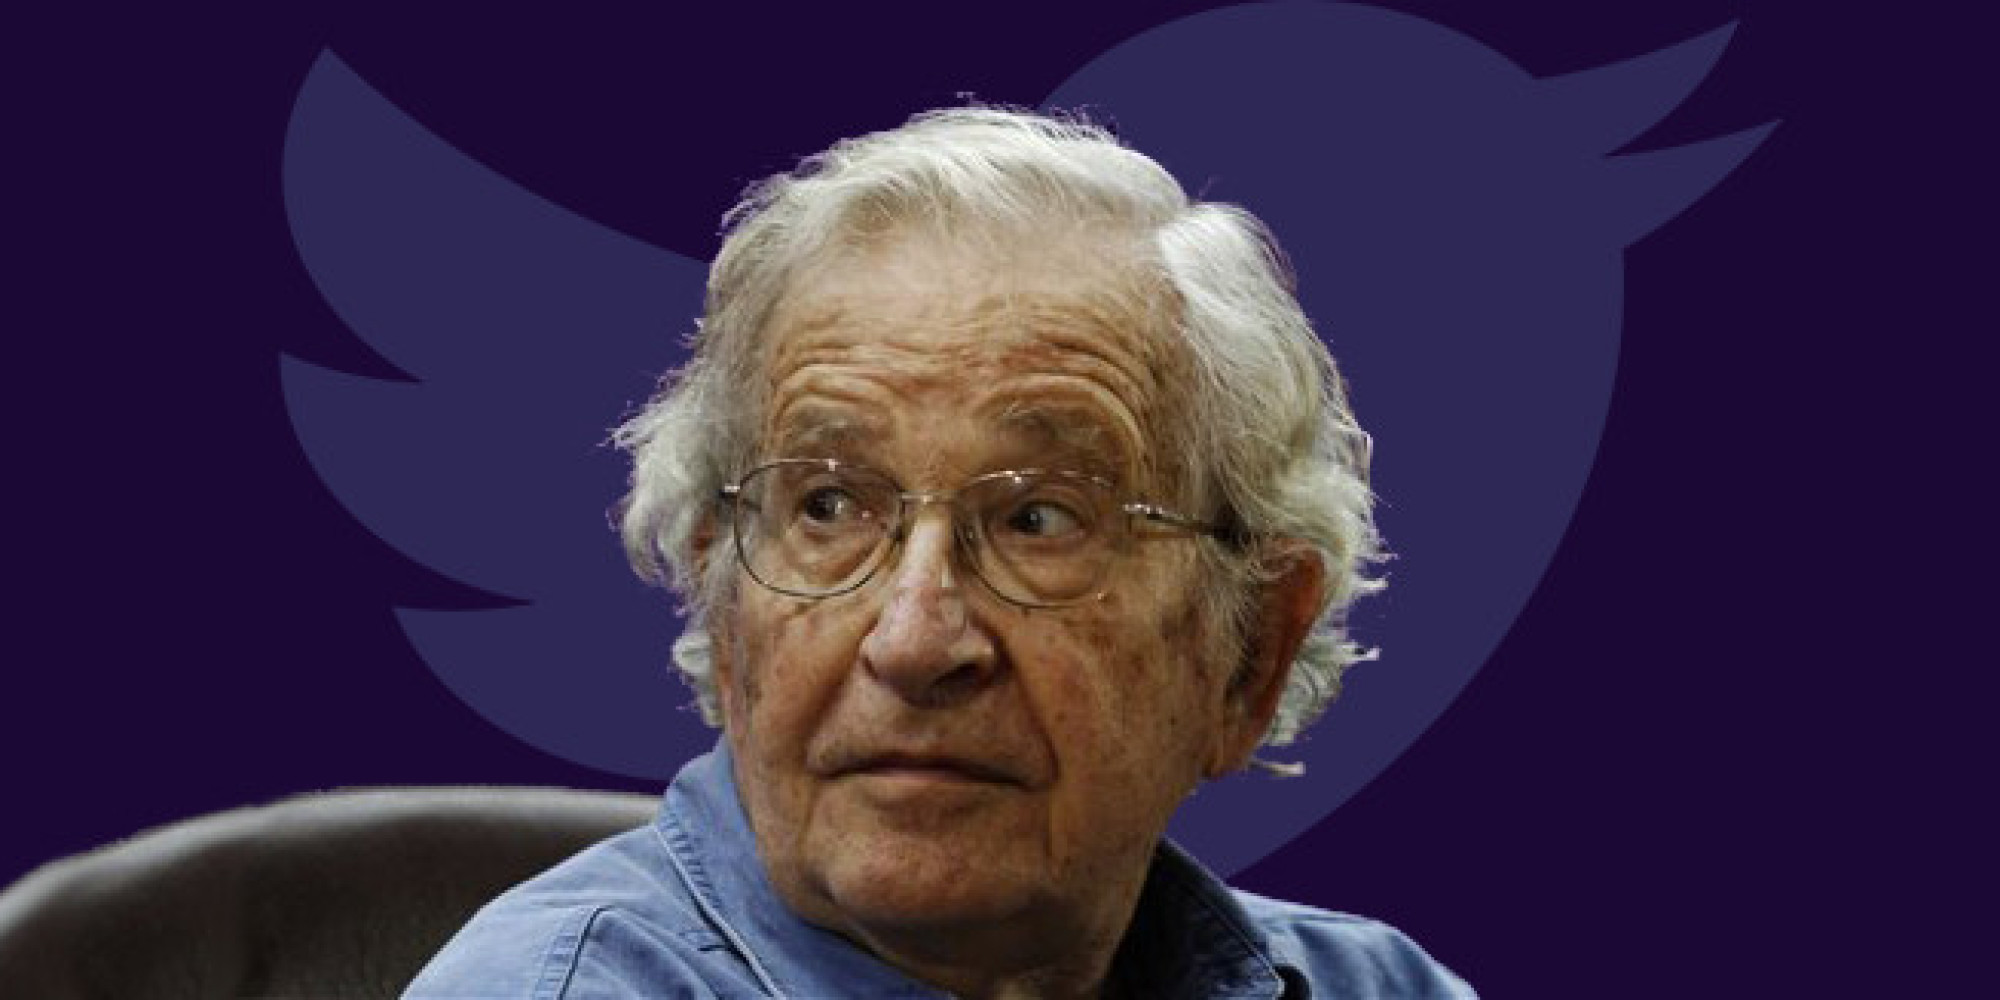 chomsky i don t look at twitter because it doesn t tell me chomsky i don t look at twitter because it doesn t tell me anything the huffington post